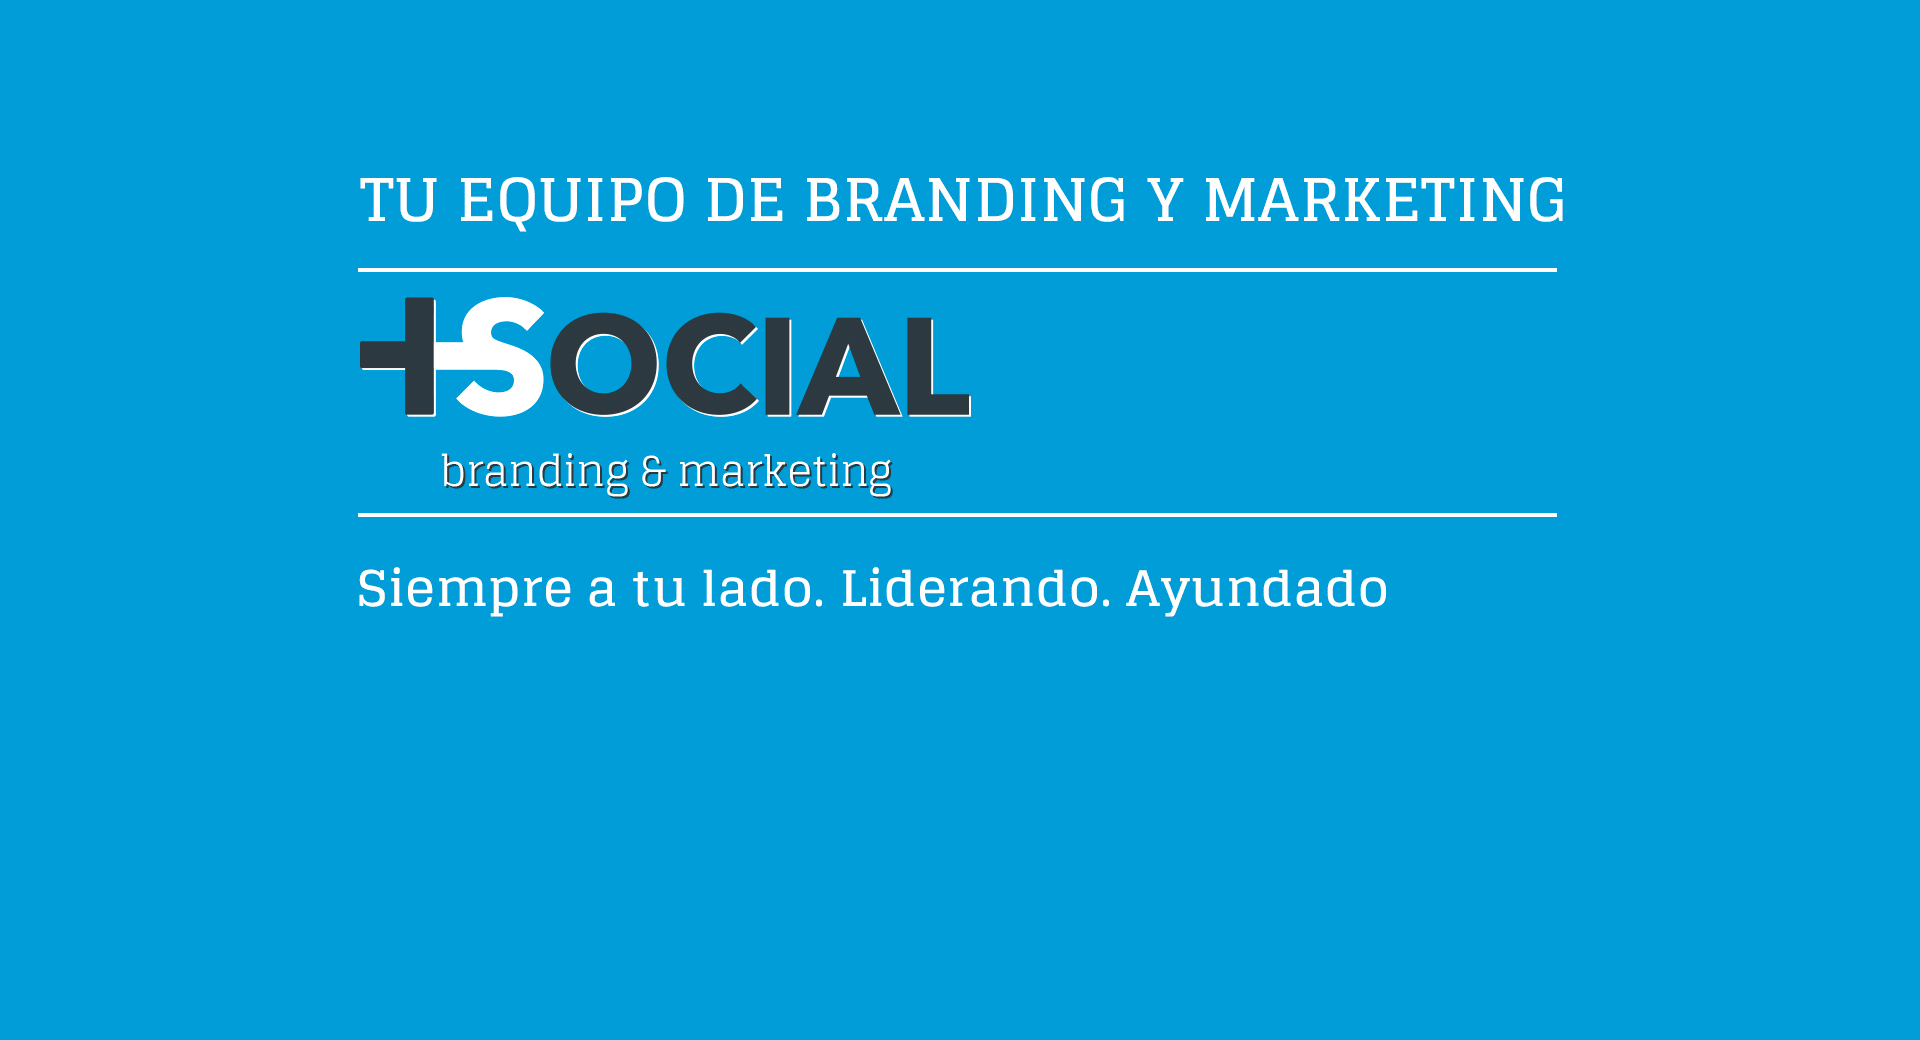 massocial: social media marketing